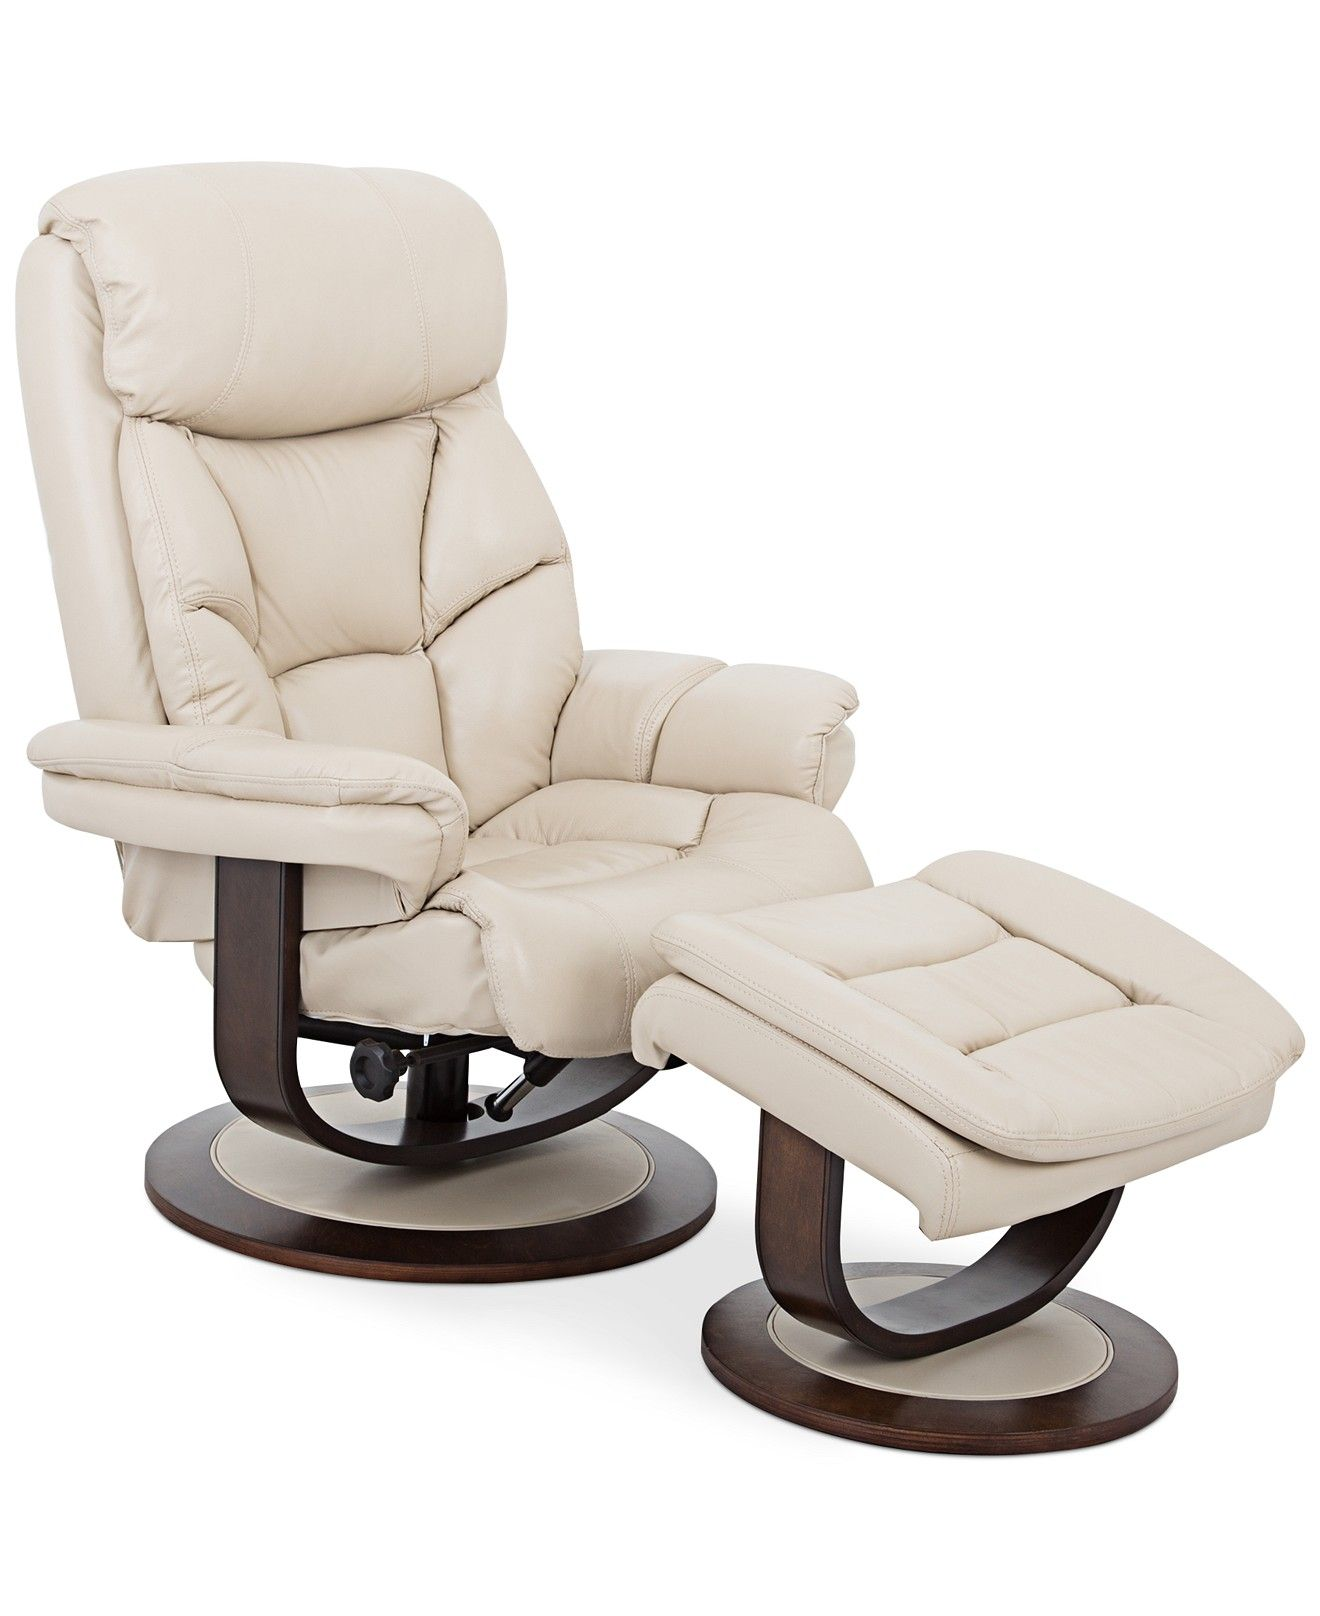 Aby Leather Recliner Chair & Ottoman | leather chairs ...